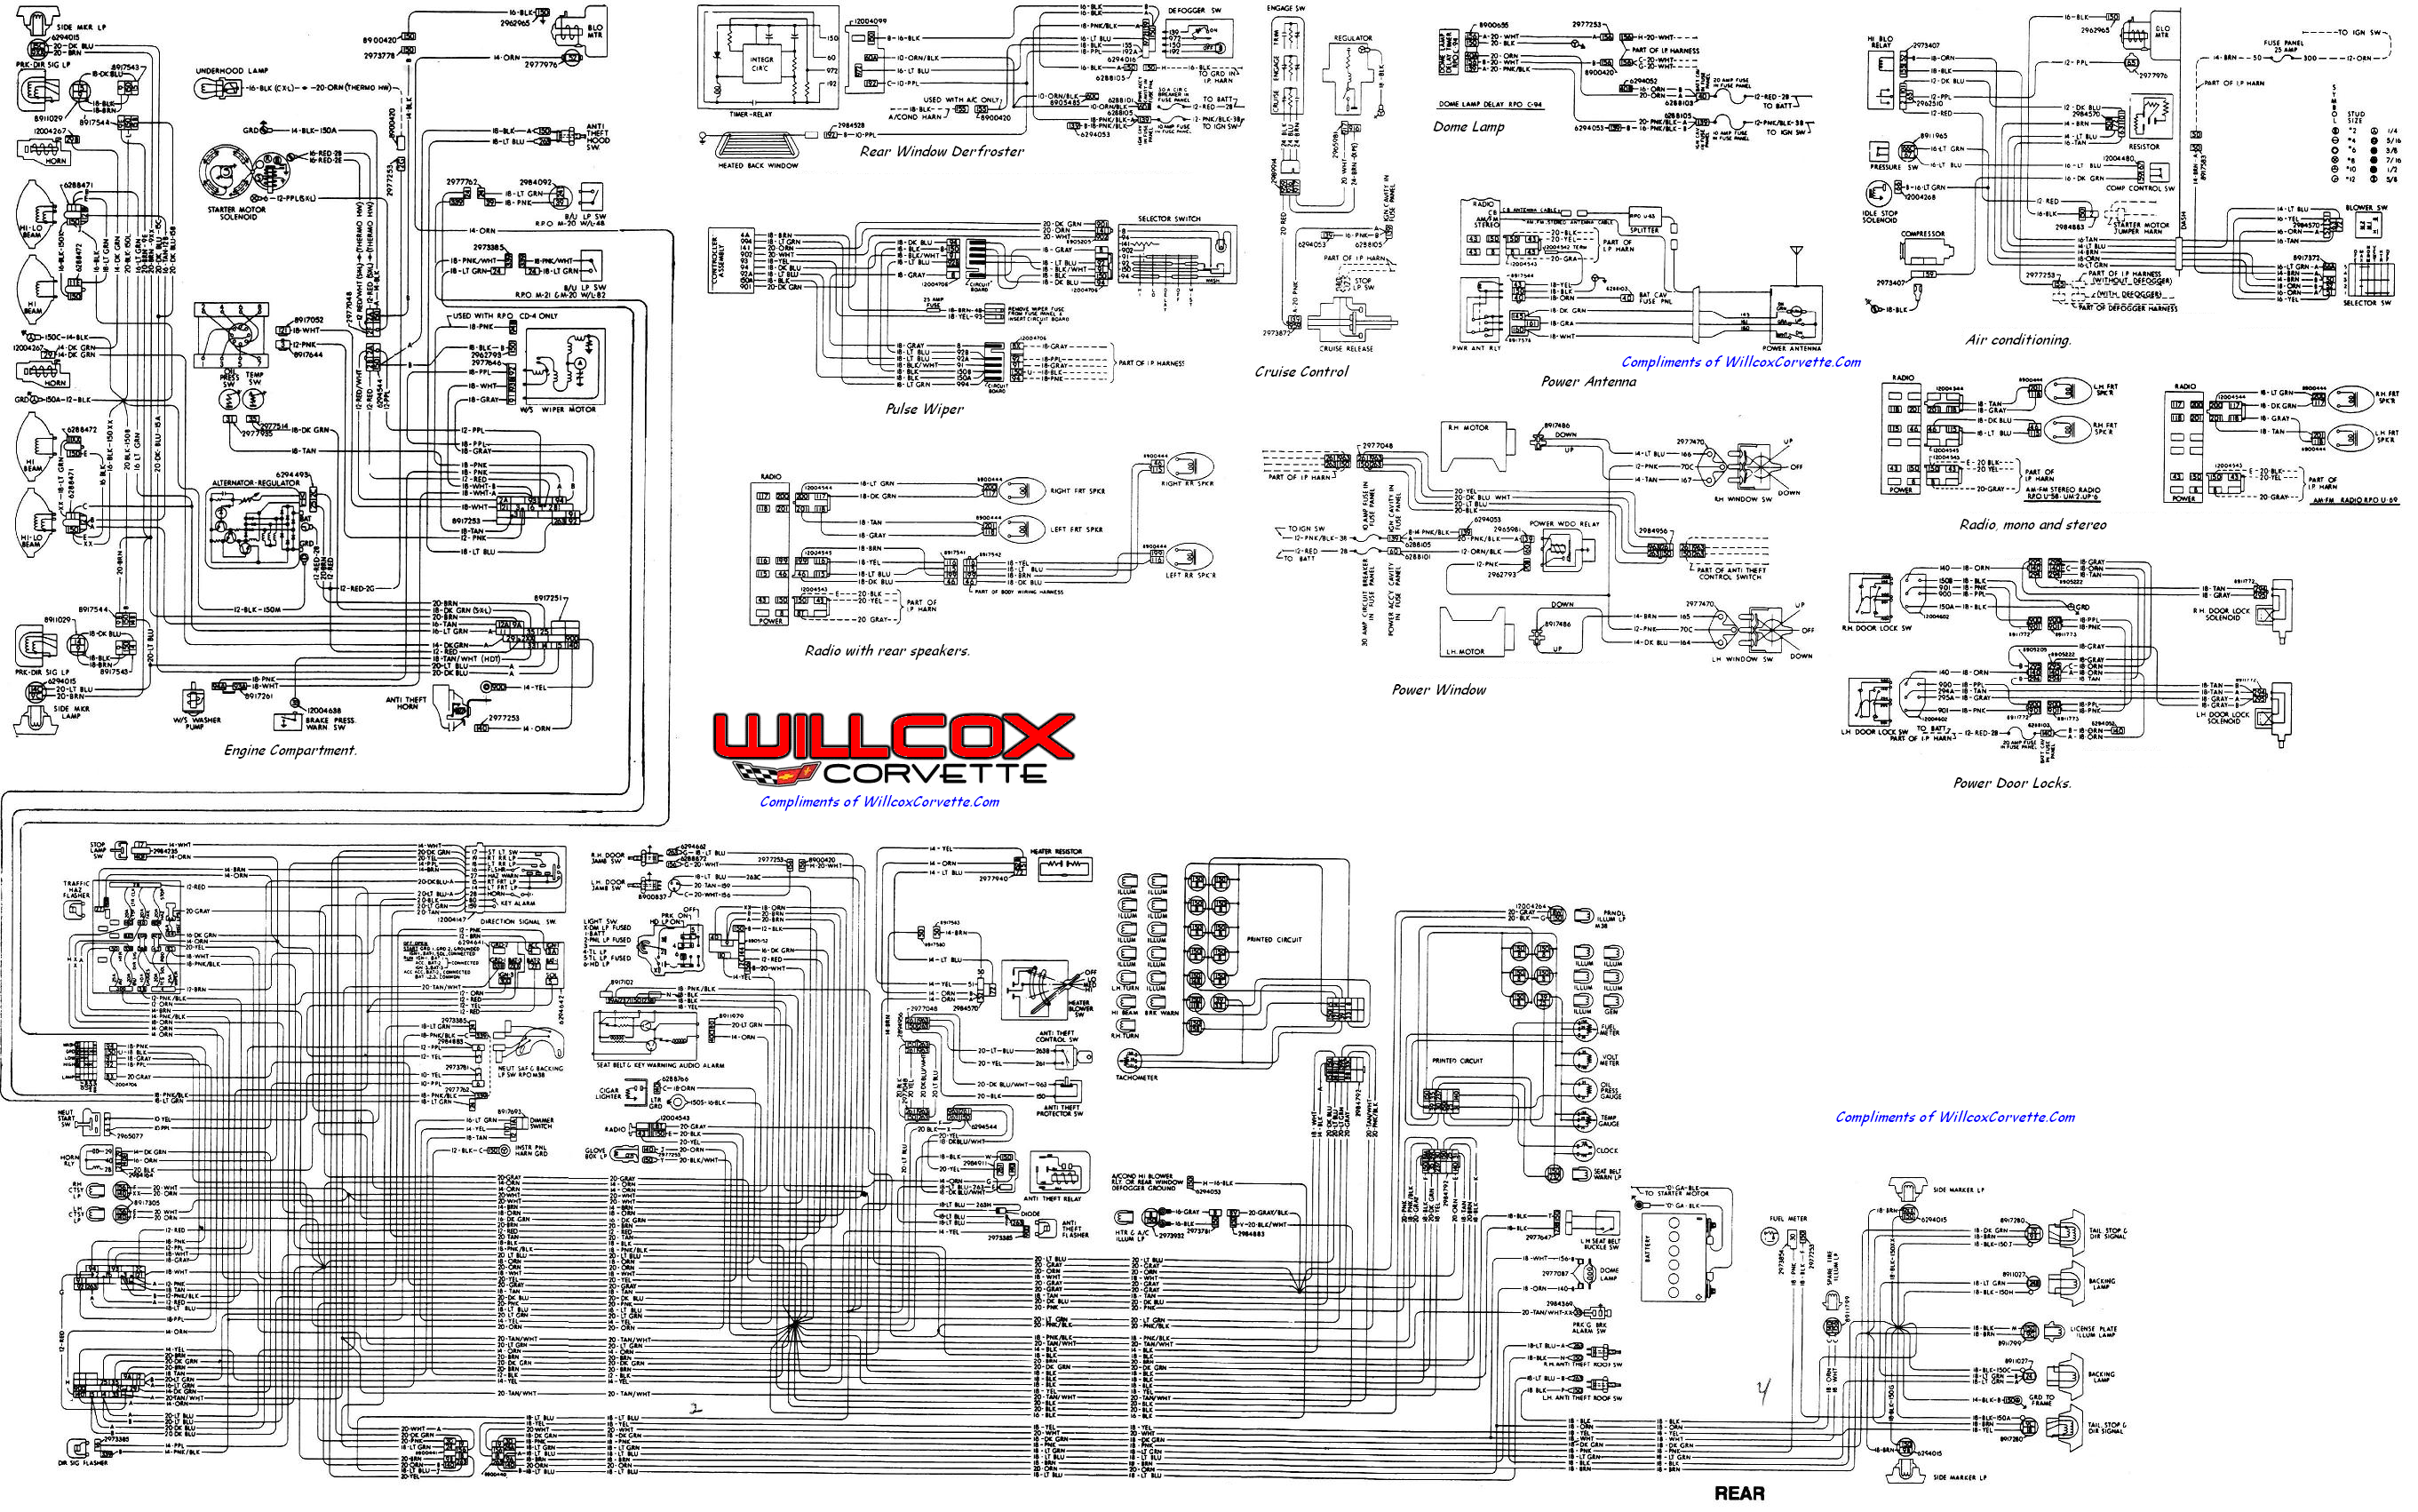 78 Corvette Wiring Diagram Everything About John Deere Gator Fuse Box 2012 1978 Tracer Schematic Willcox Inc Rh Repairs Willcoxcorvette Com 63